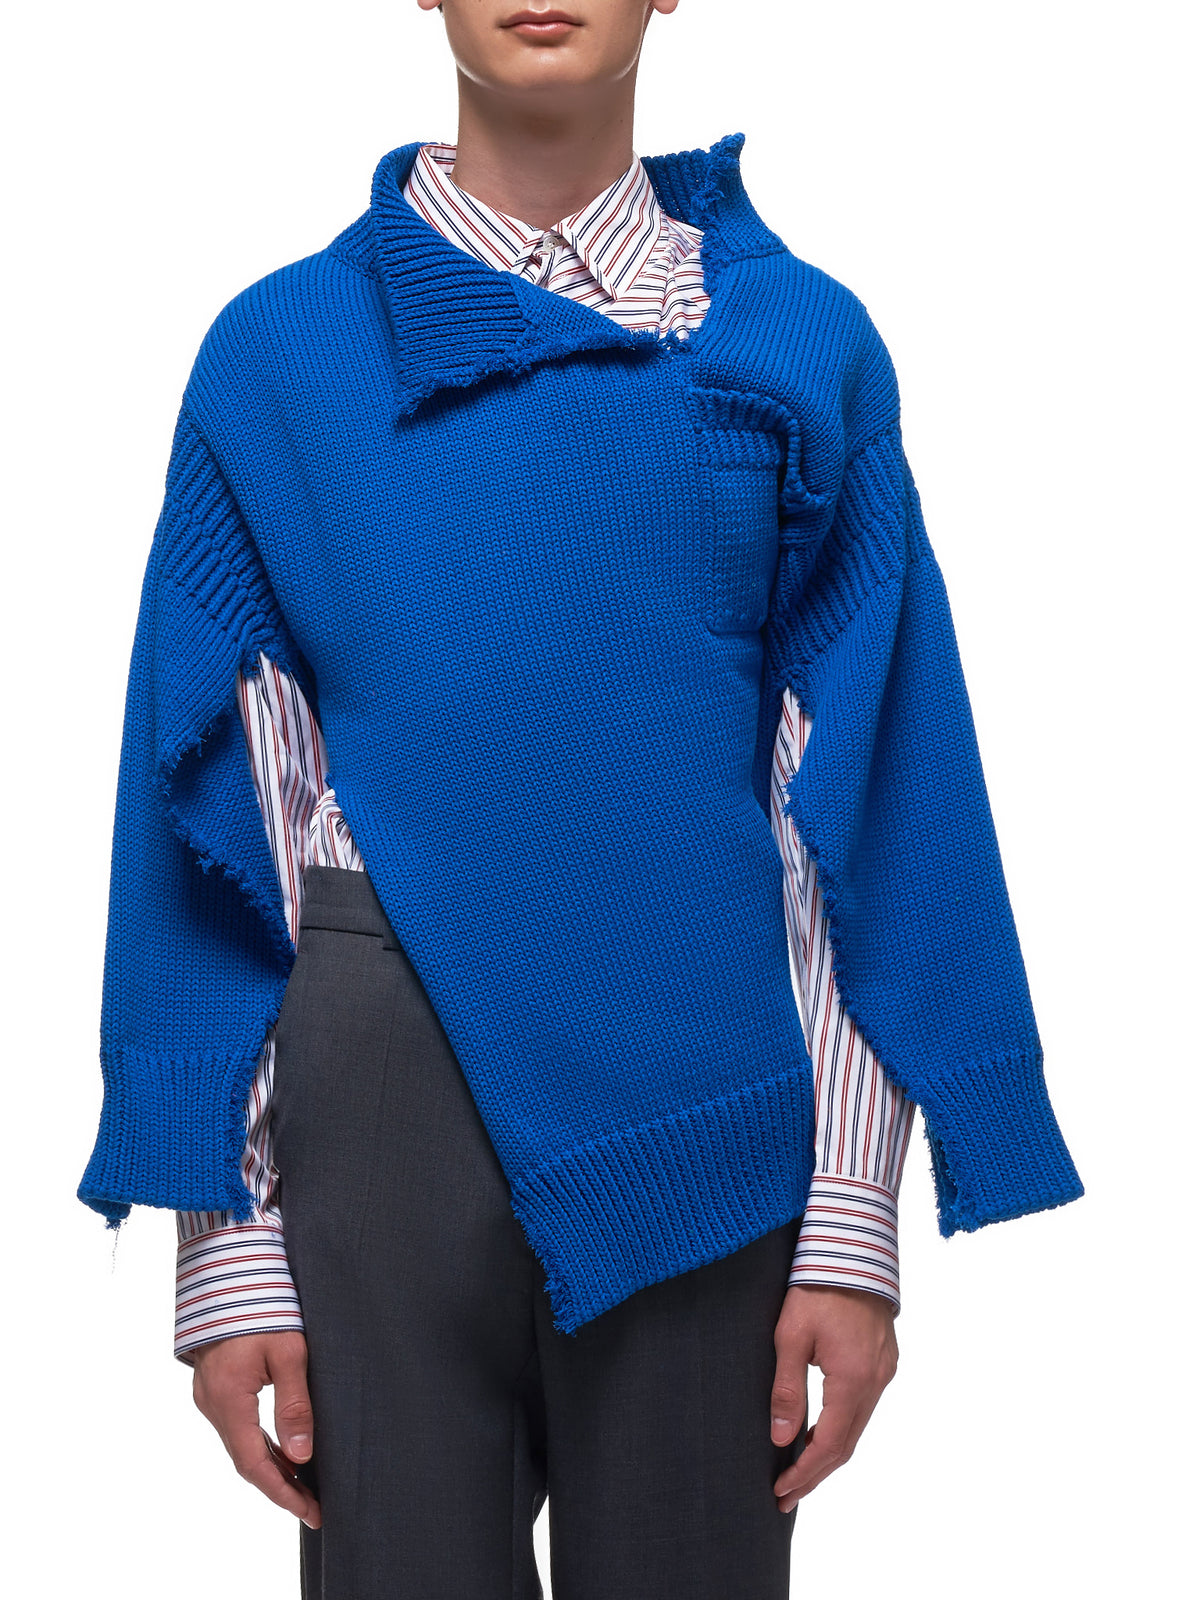 Deconstructed Knitted Fisherman Sweater (CVMD0043A0-00B57-BLUE)